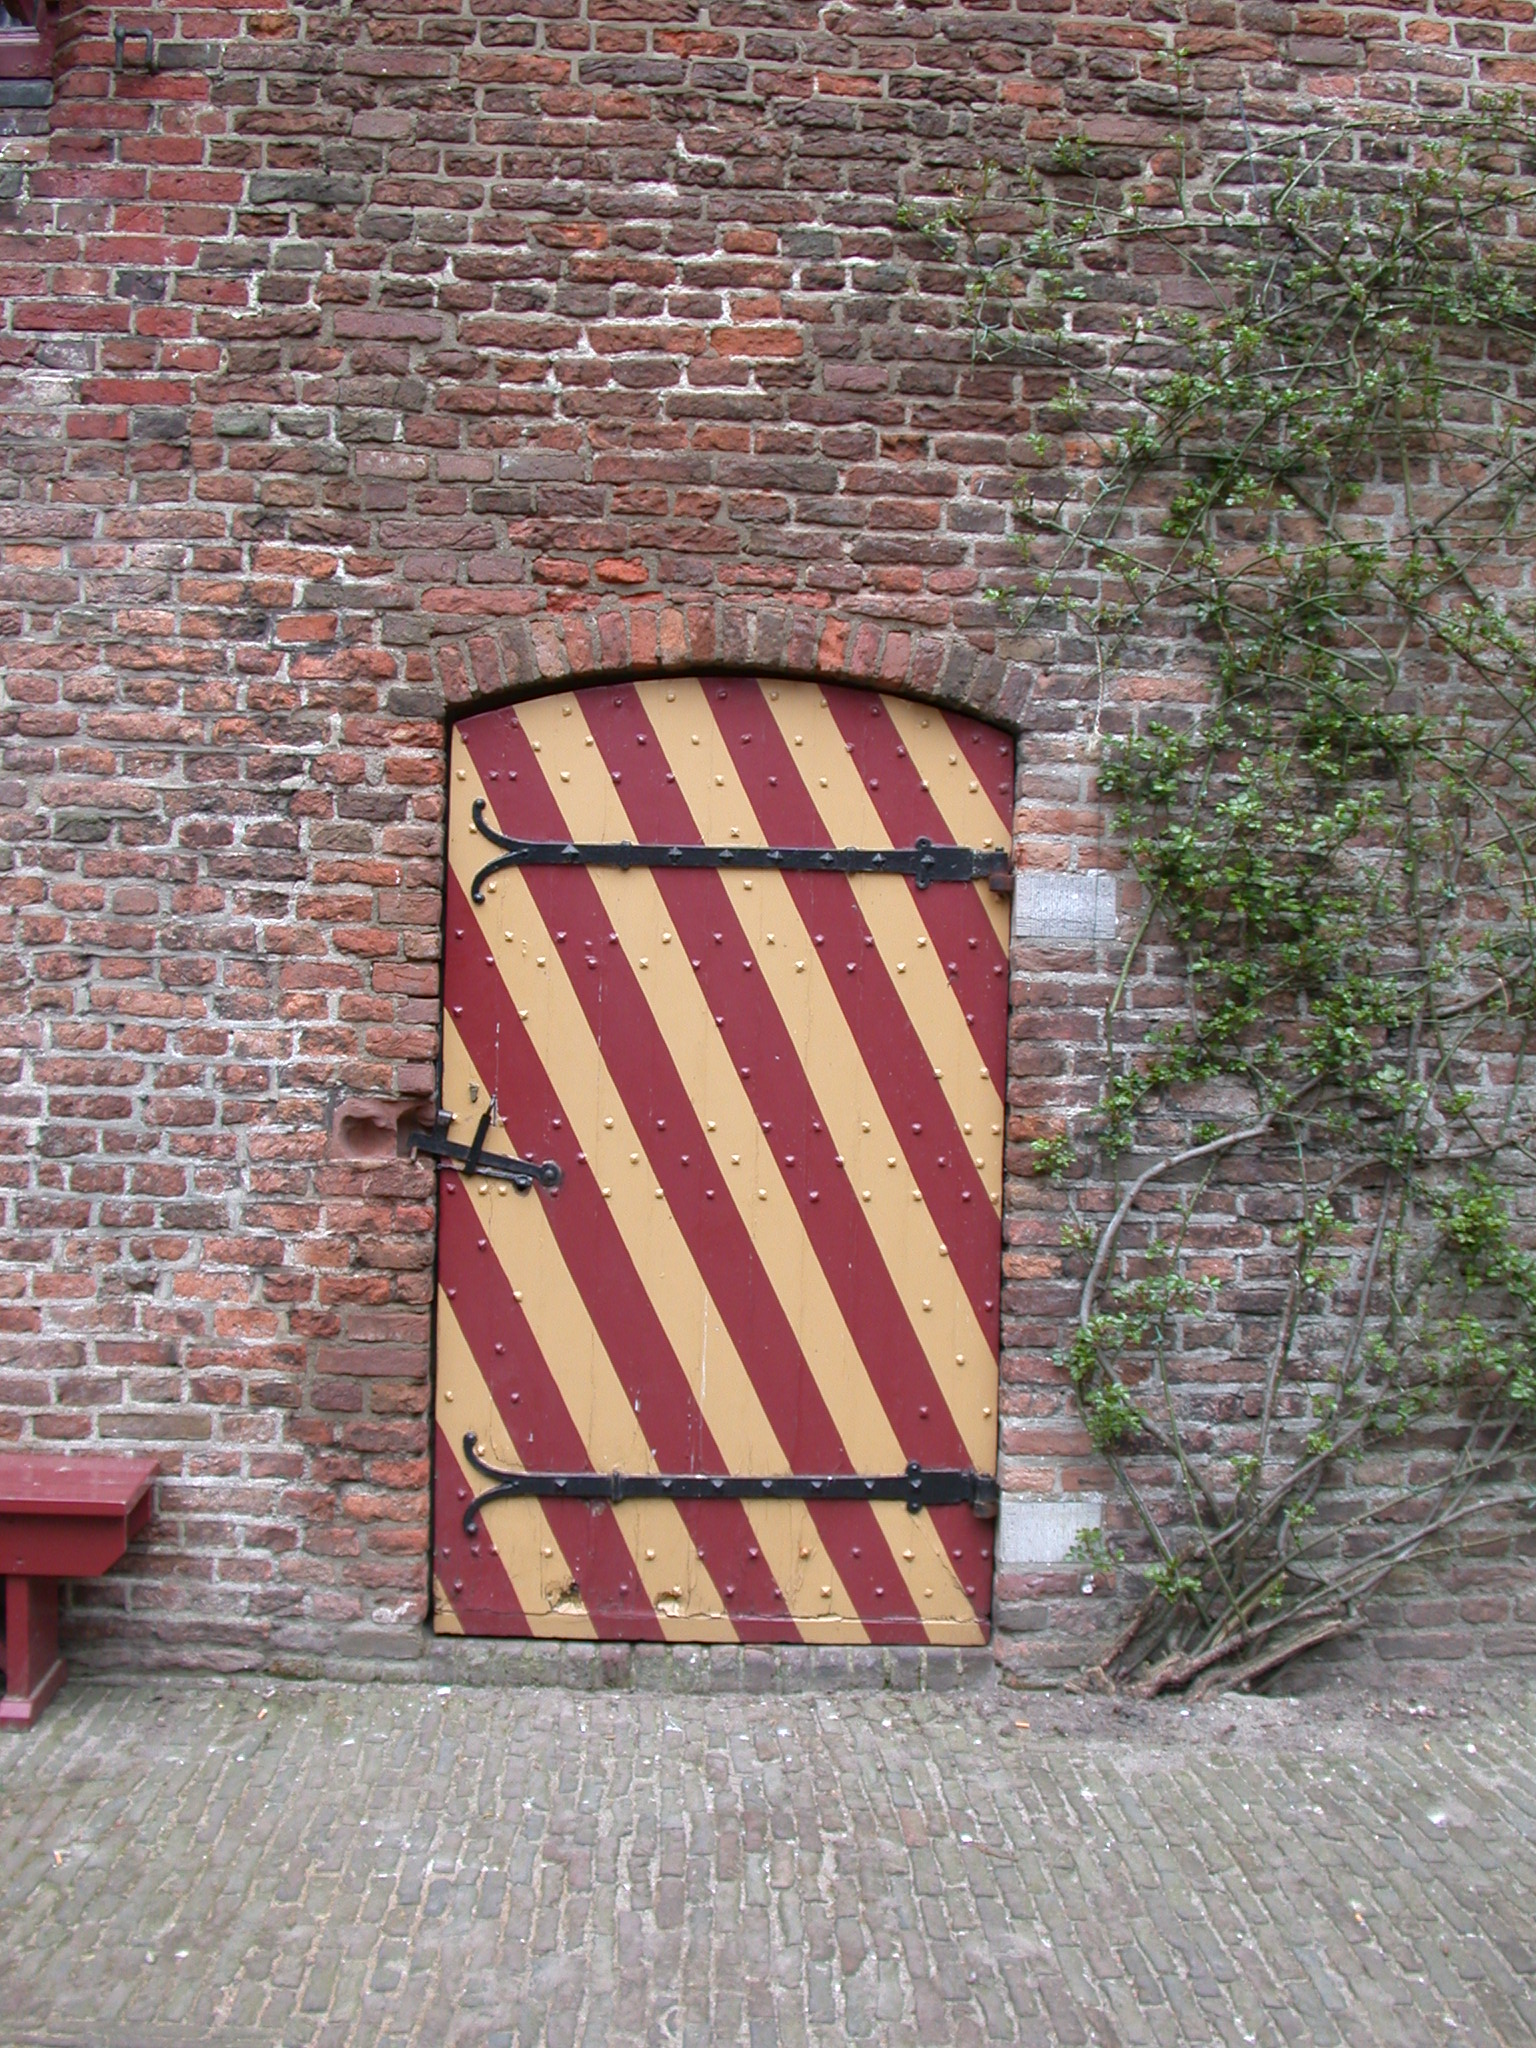 brick wall striped stripes door round top yellow red